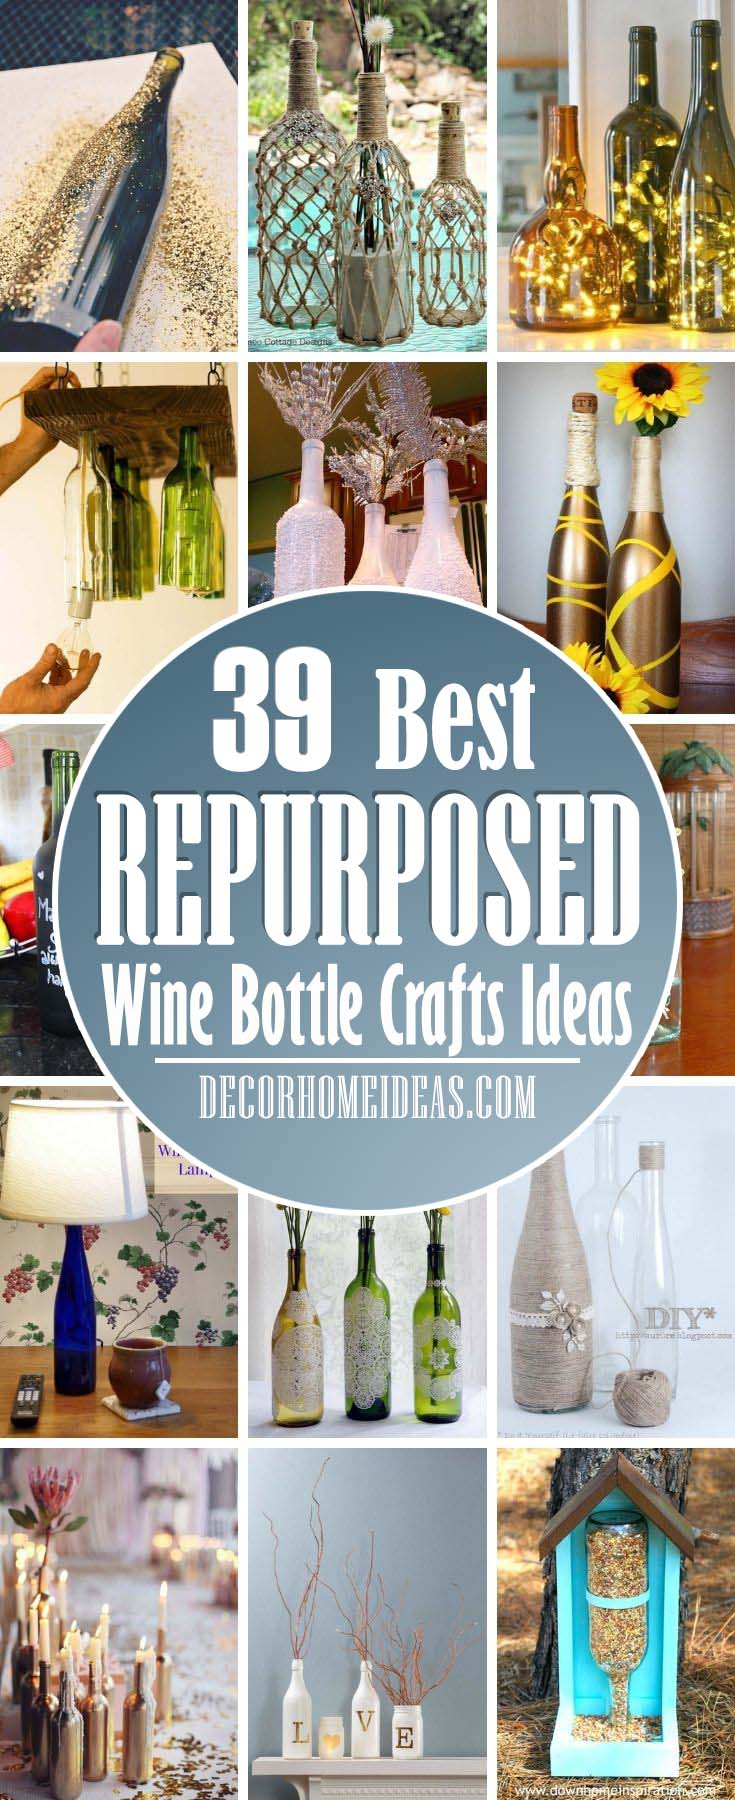 Best Repurposed DIY Wine Bottle Crafts Ideas. These DIY wine bottle crafts are the cutest ways to repurpose glass vessels. These easy DIYs make for a perfect Christmas project, Mother's Day gift, or just a decor item to keep for yourself—and an excuse to drink wine! #decorhomeideas